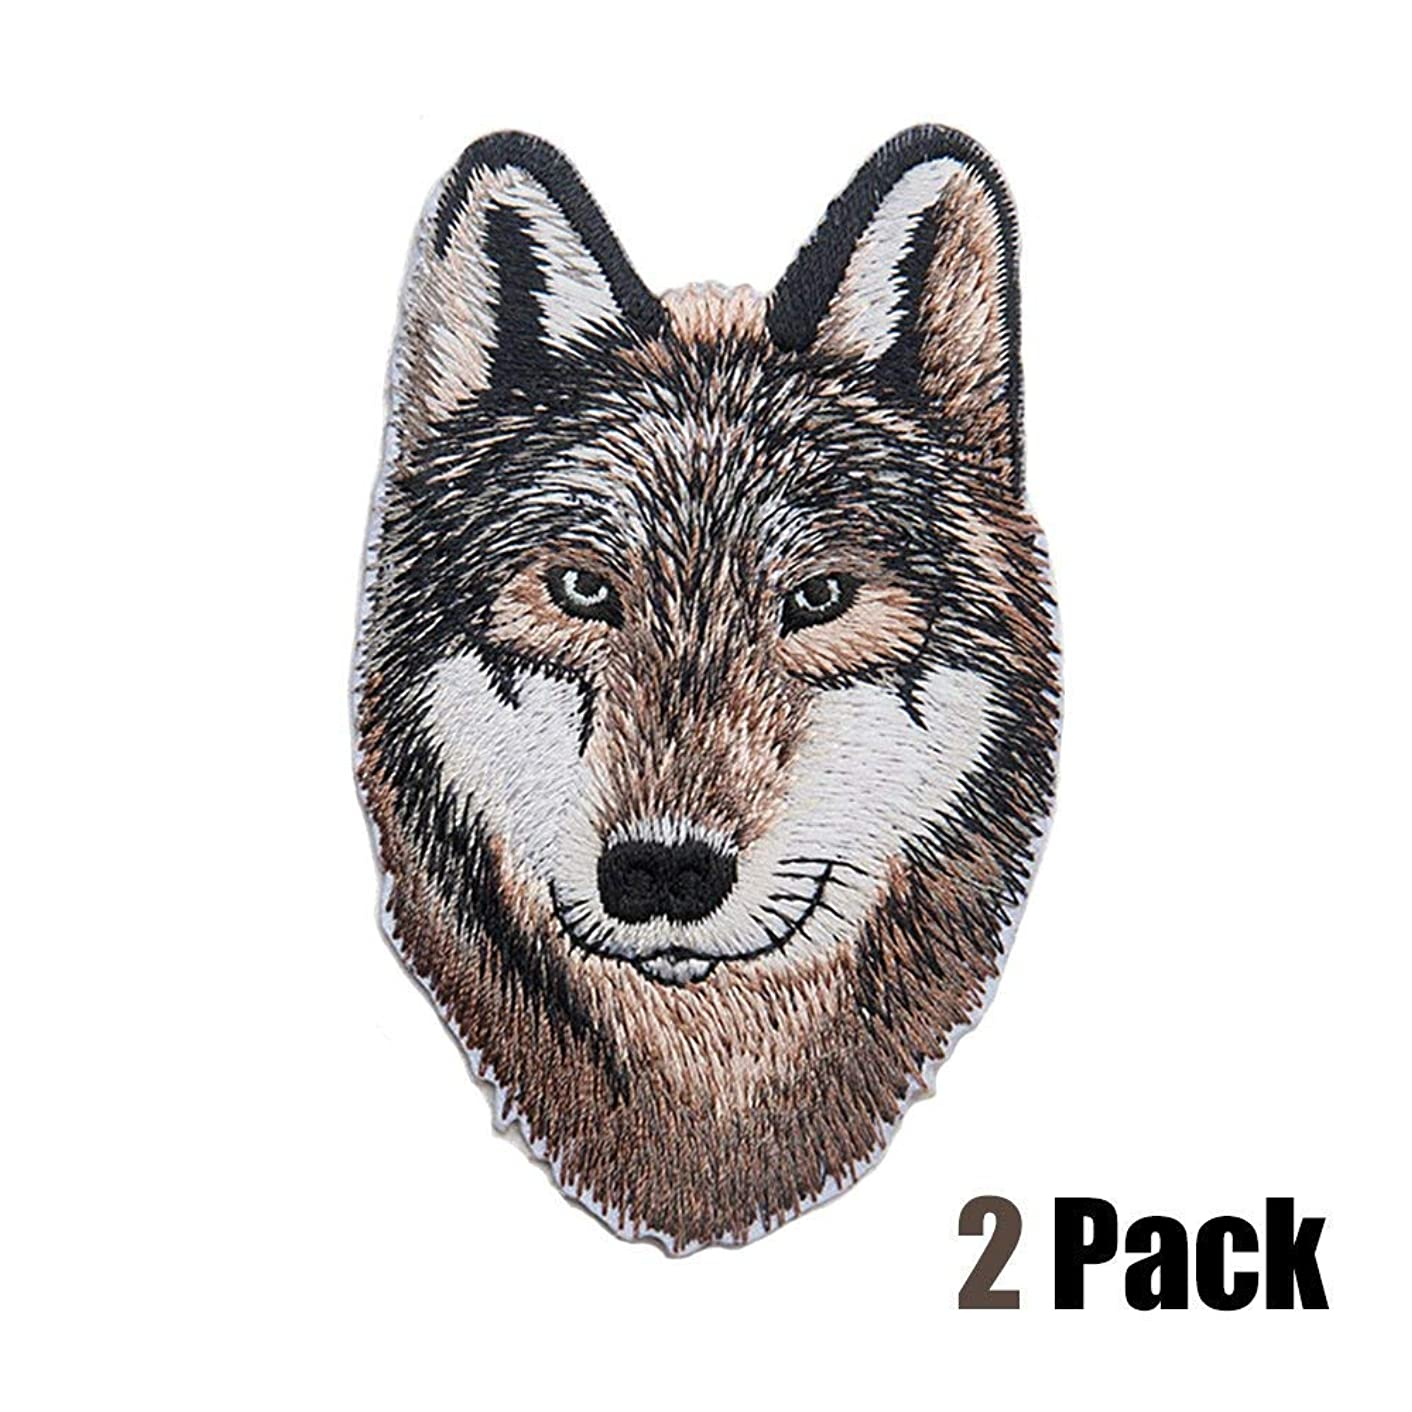 2 Pcs House Stark Wolf Patch Delicate Embroidered Patches, Direwolf Cute Embroidery Patches, Iron On Patches, Sew On Applique Patch,Cool Patches for Men, Women, Kids